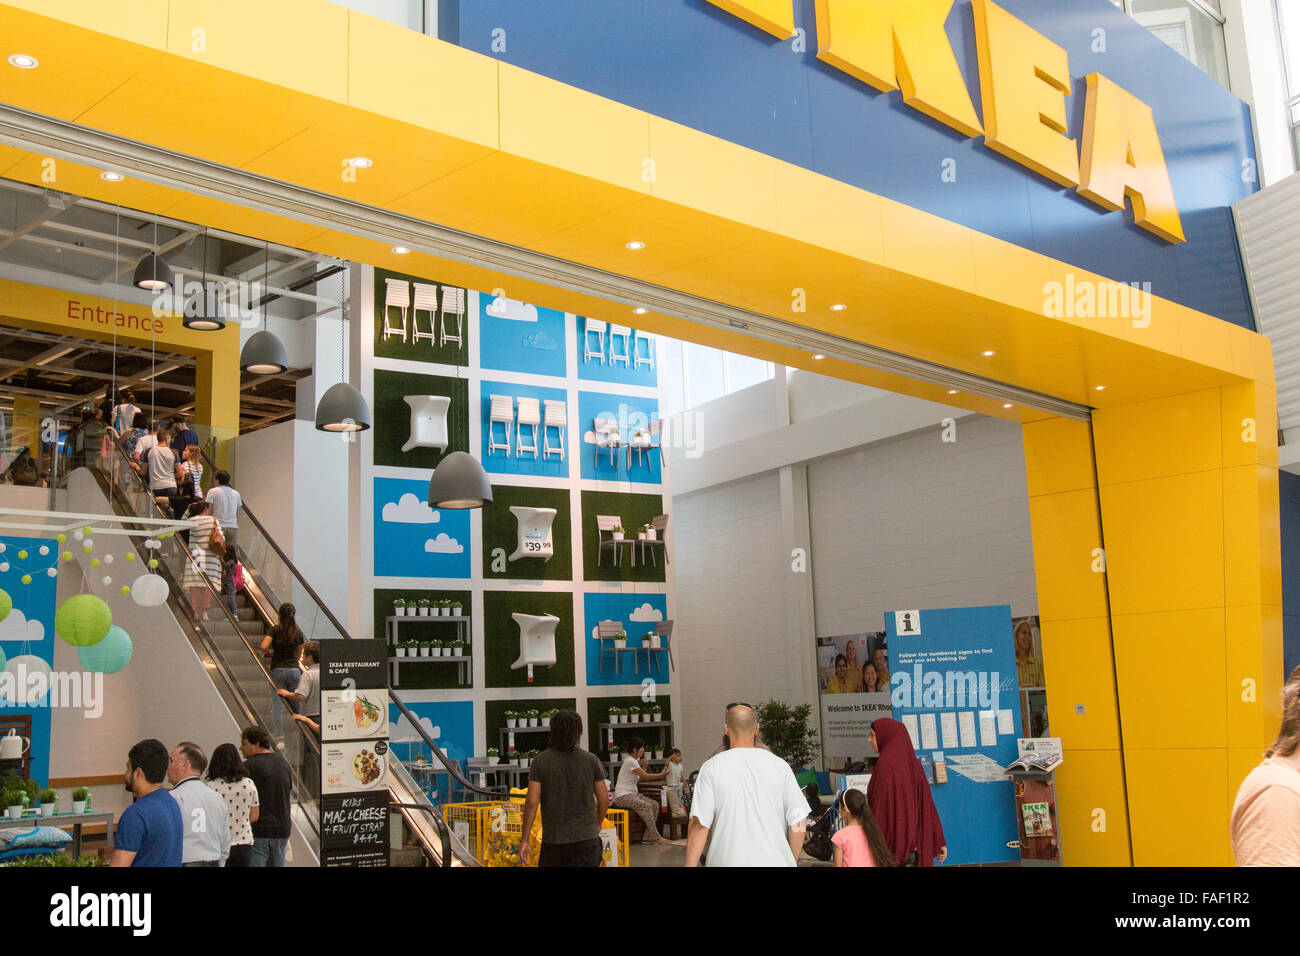 ikea möbelhaus eingang im rhodos shopping centre in sydney, new